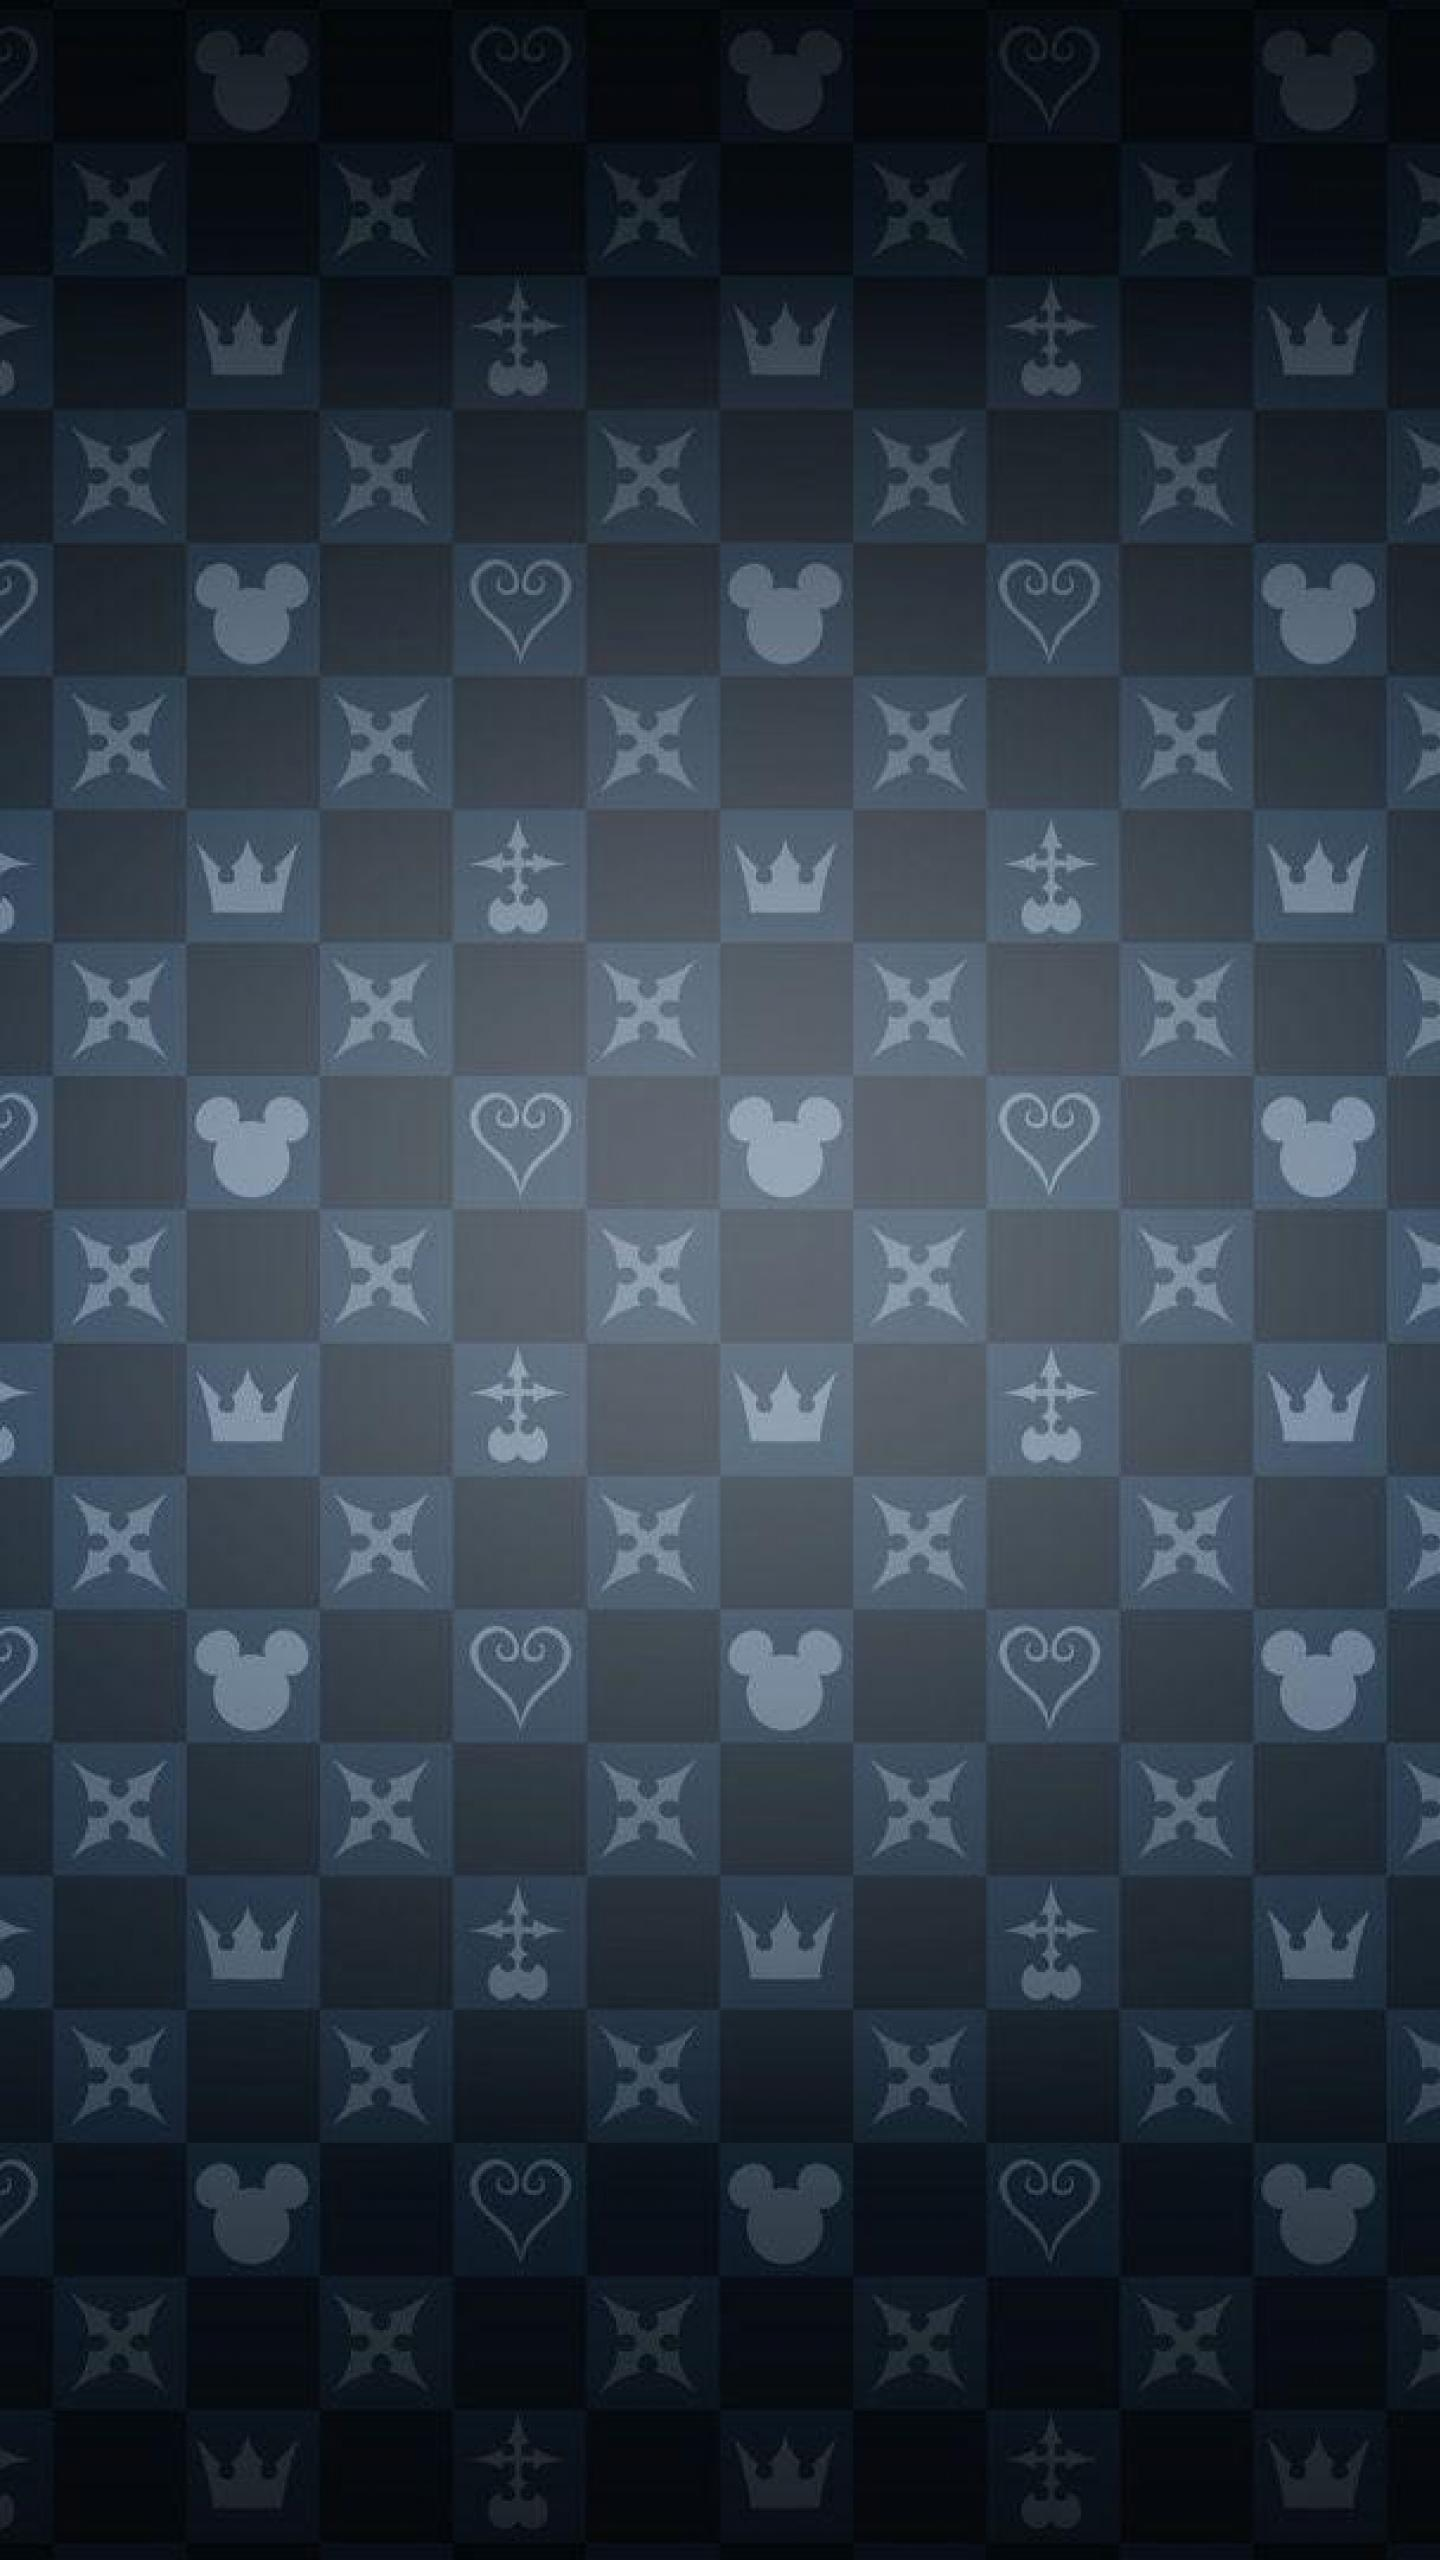 Wallpaper Hd Mickey Mouse Download Kingdom Hearts Phone Wallpaper Gallery